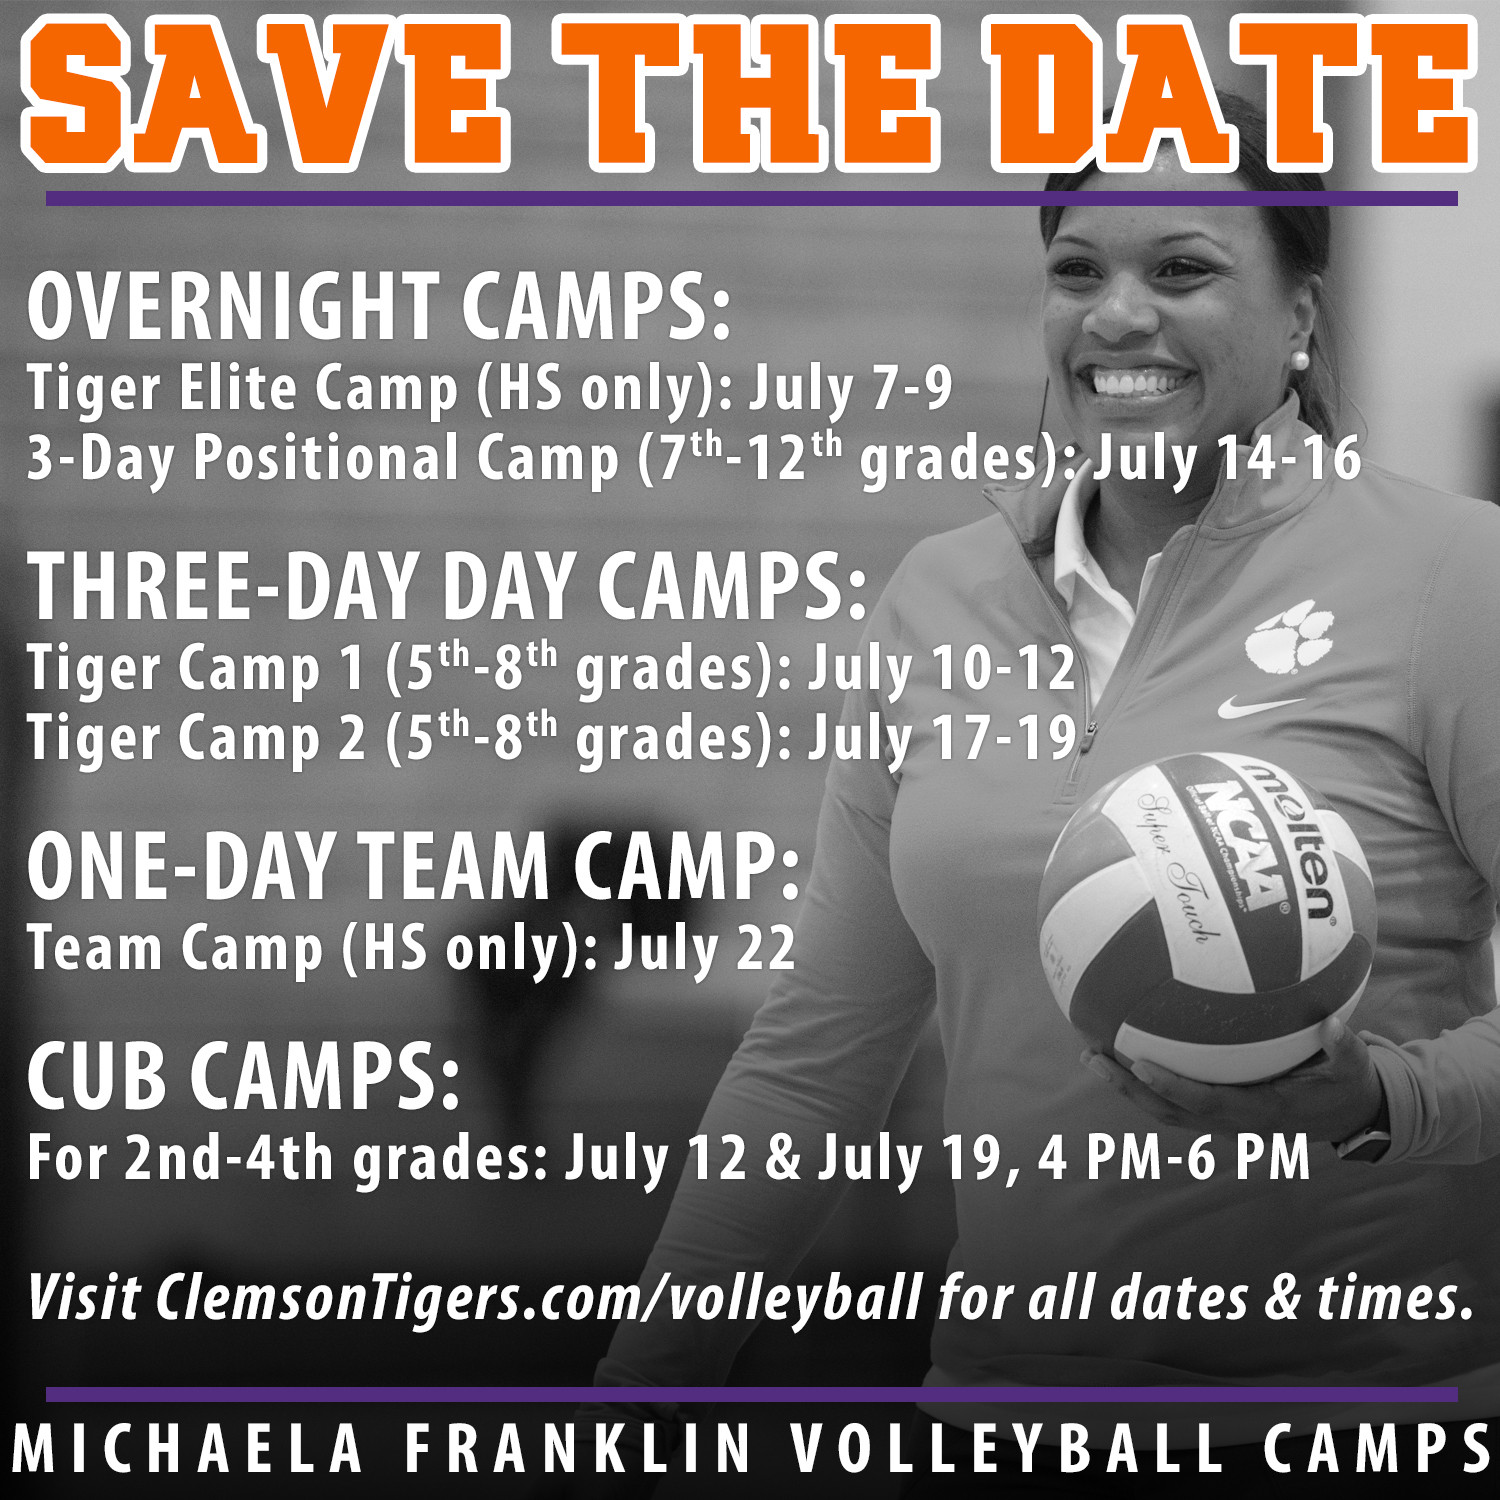 Summer 2017 Dates Announced for Michaela Franklin Volleyball Camps